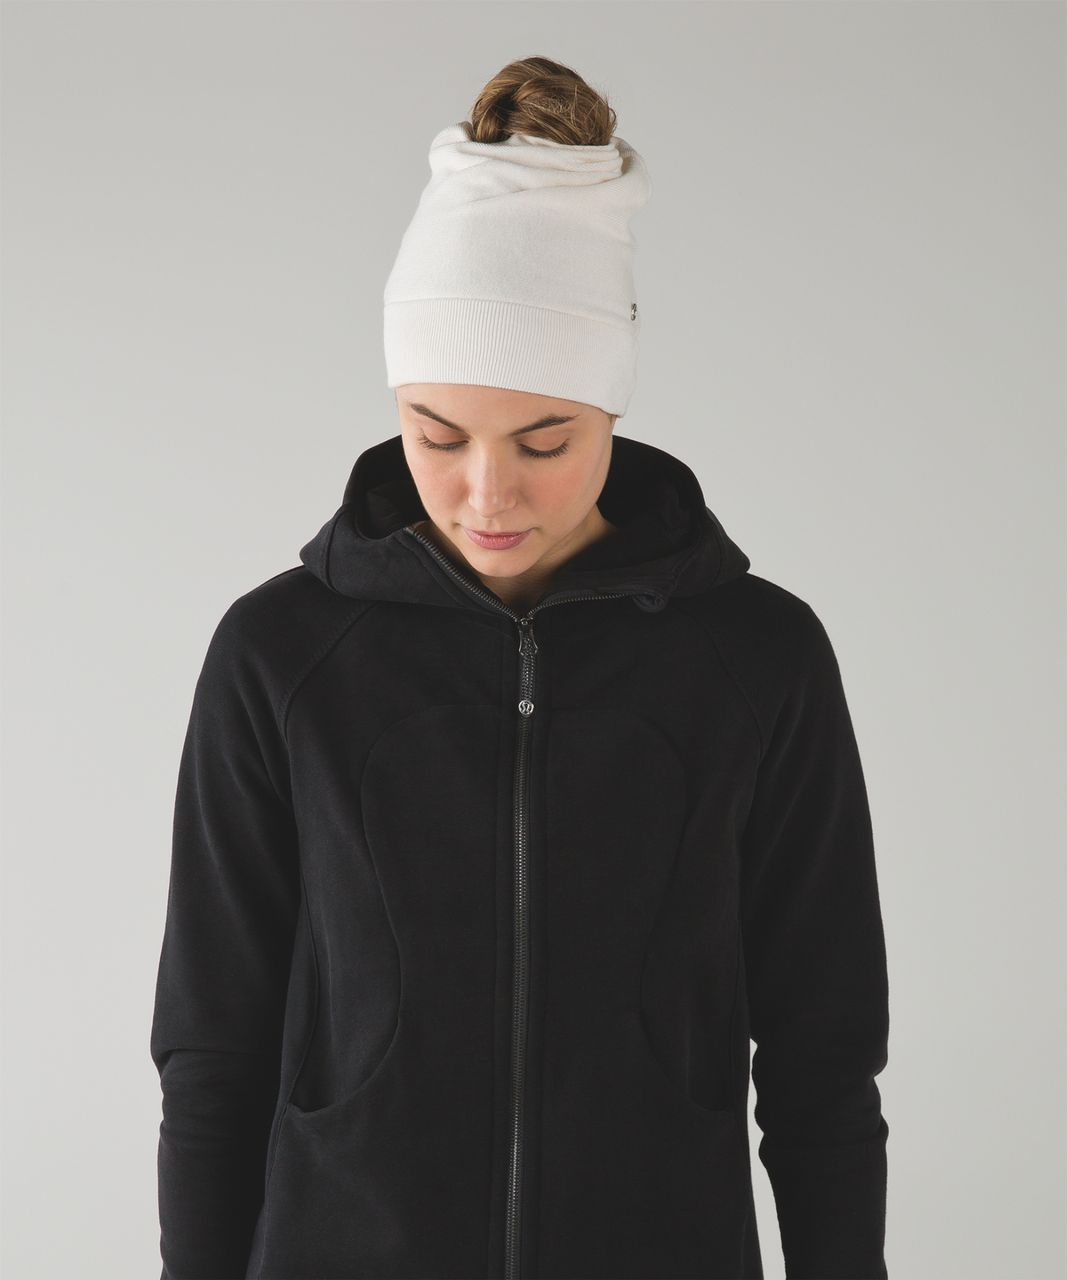 Lululemon Sheer Bliss Toque - Heathered White